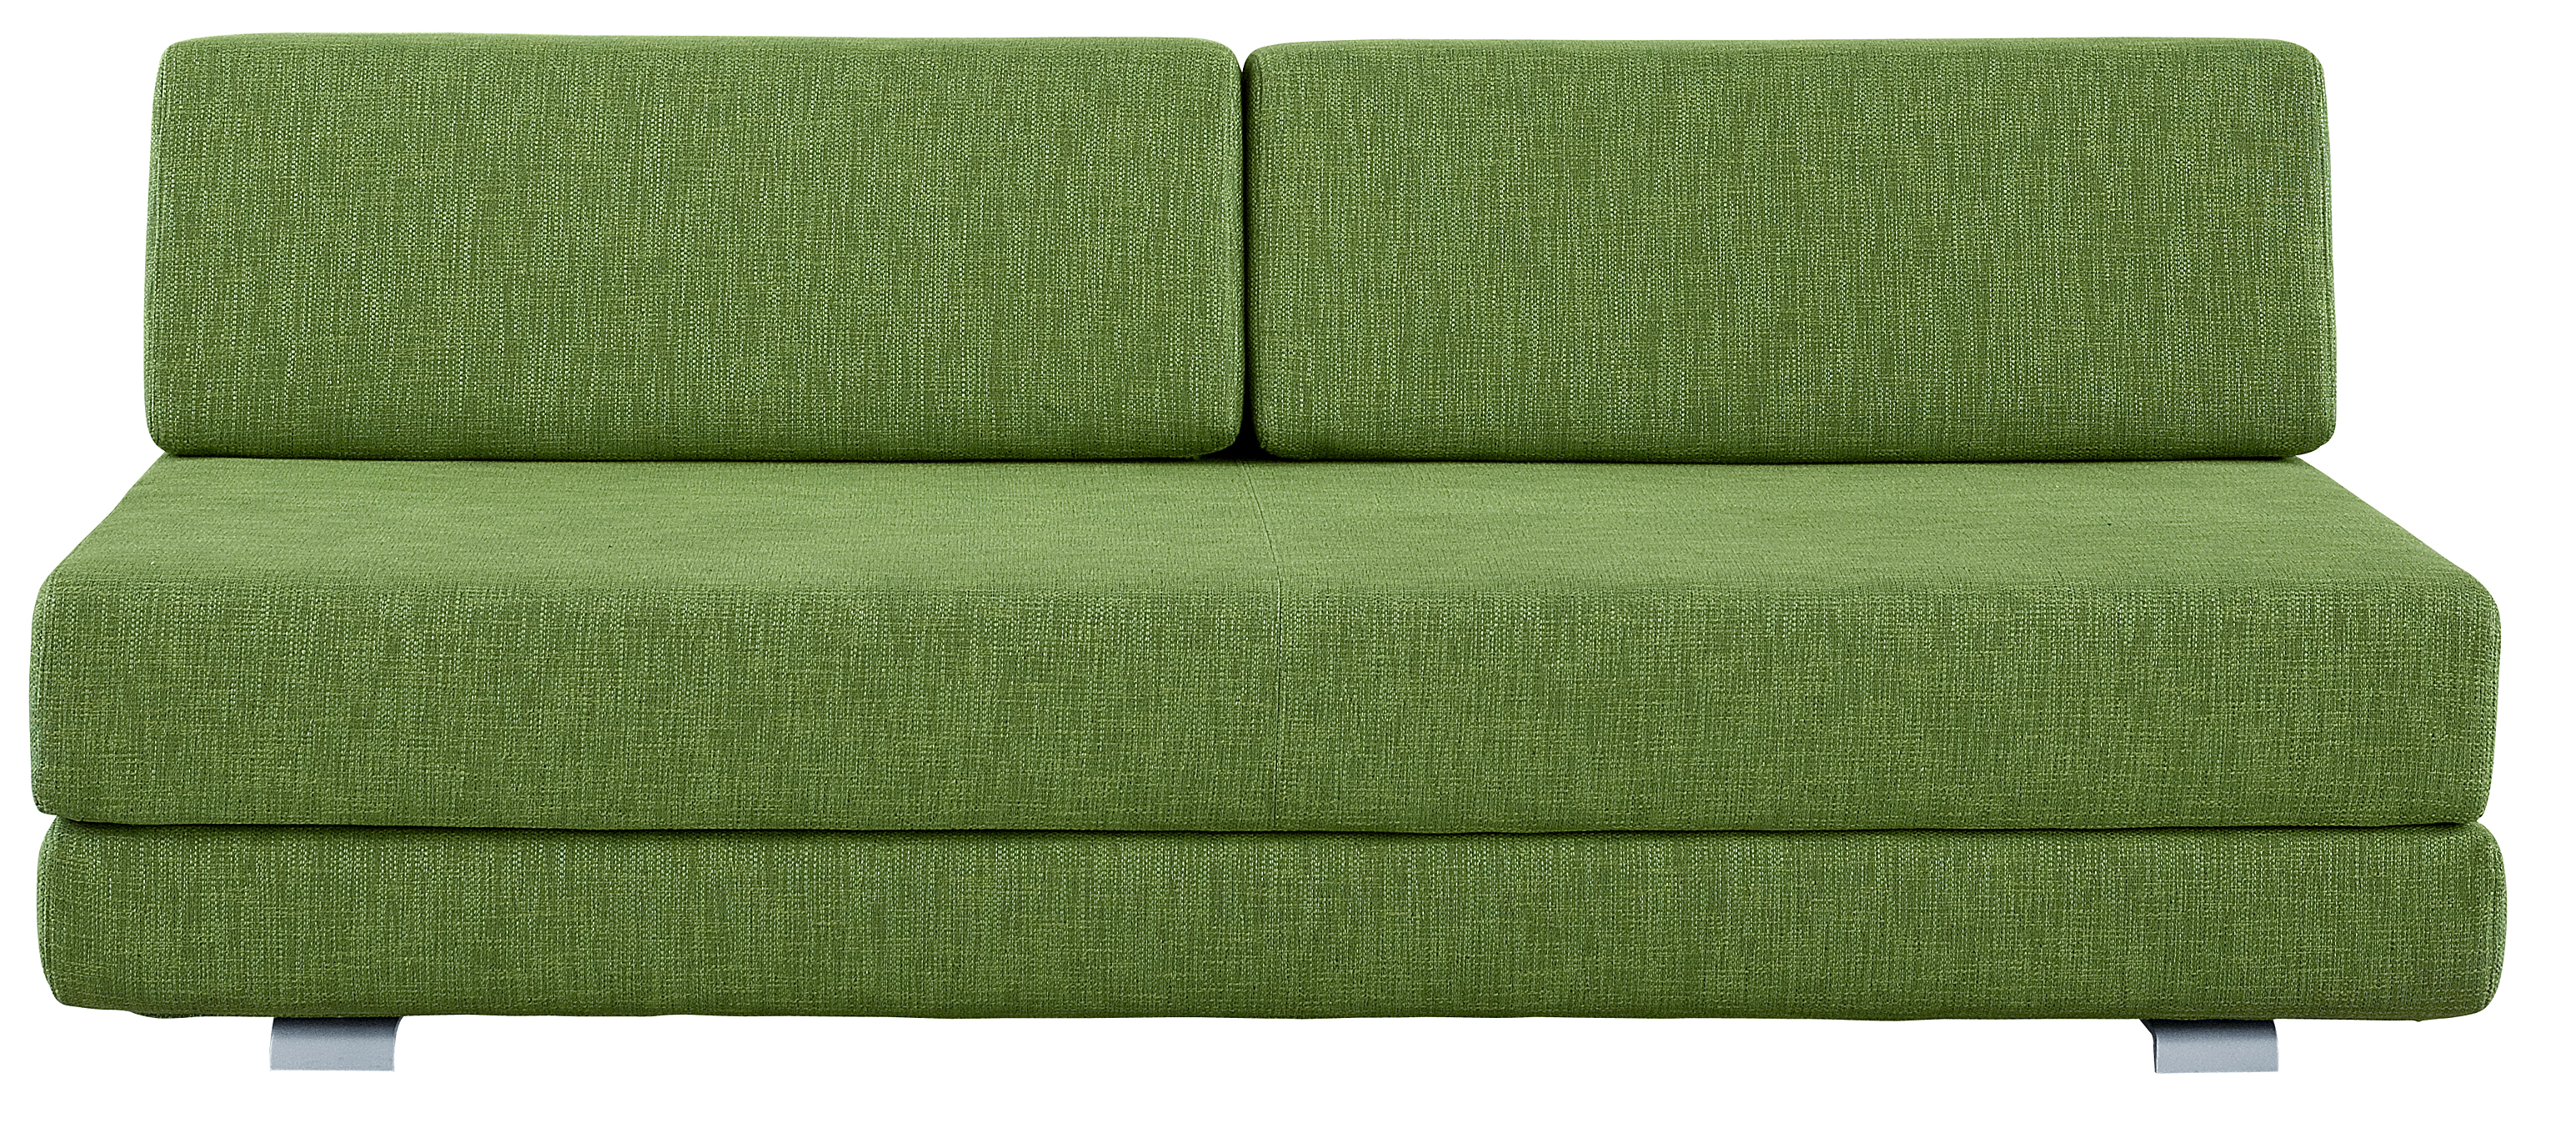 Design Schlafsofas Softline Lounge Design Sofa Schlafsofa